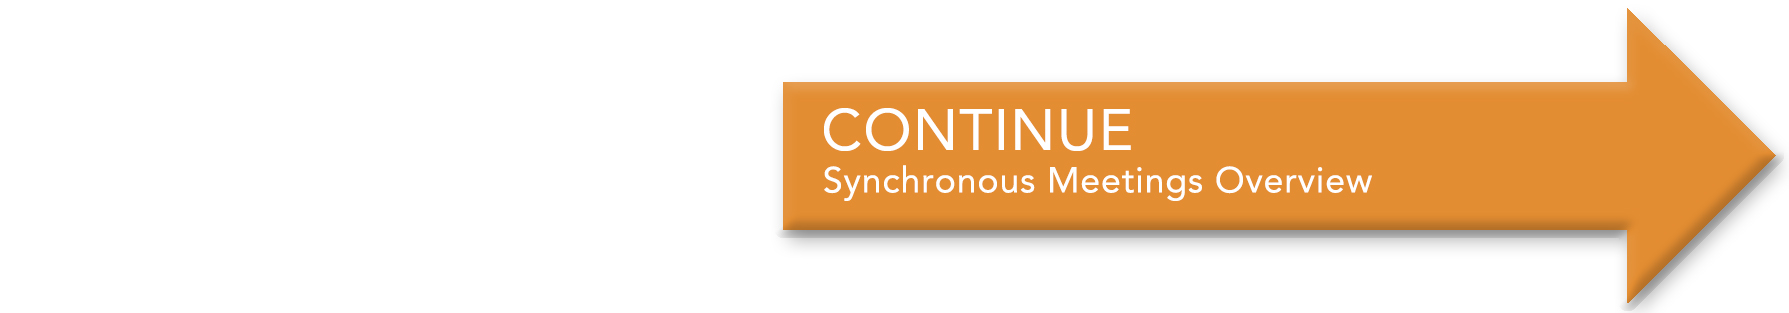 continue to Synchronous Meetings Overview